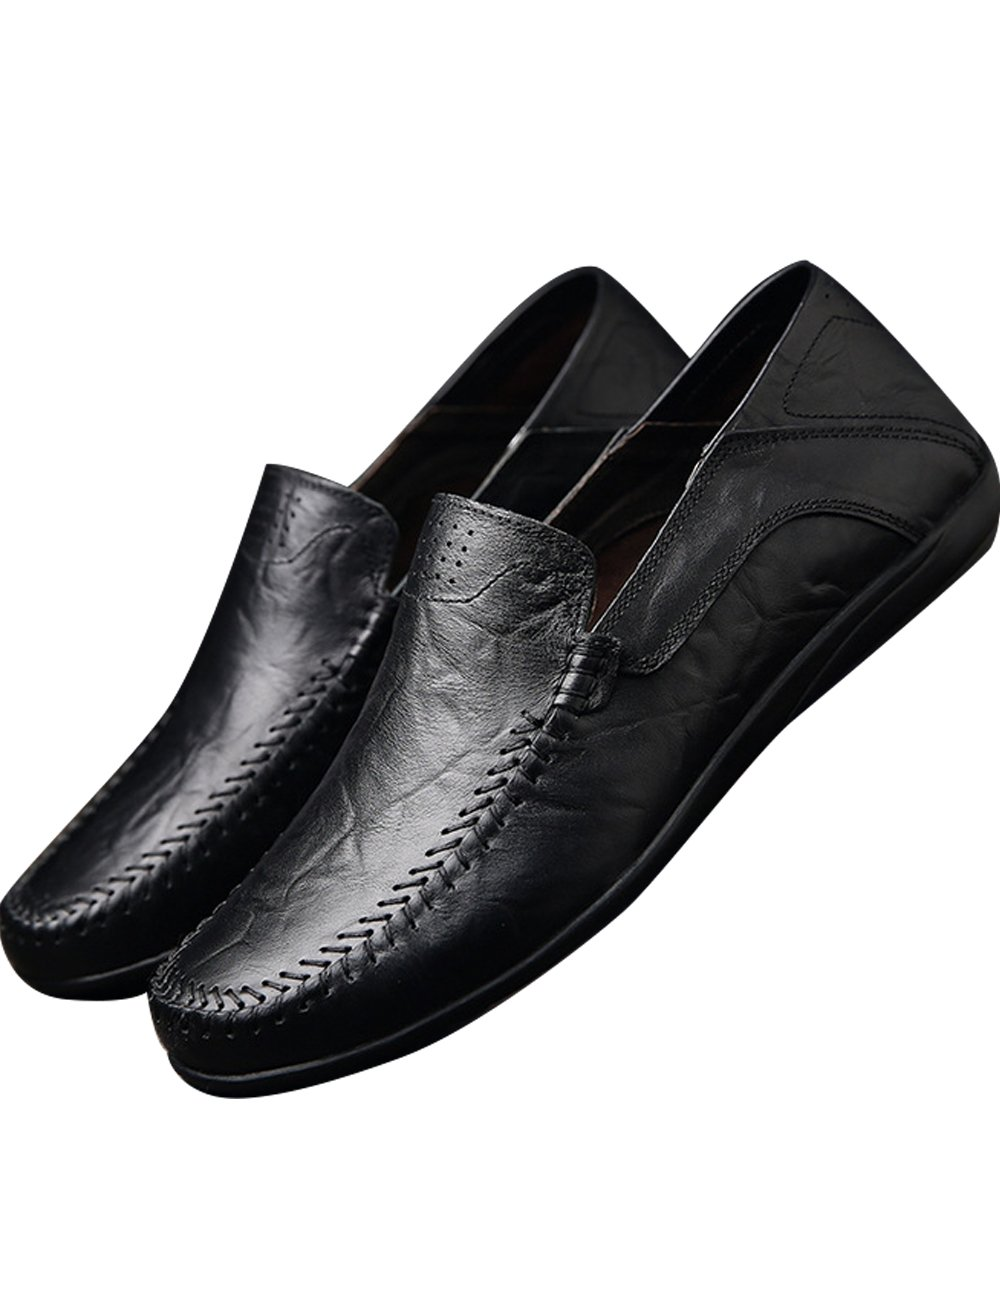 Menschwear Men's Genuine Leather Casual Loafers Shoes Slip-On Skate Shoes 8.5 M US|Black-tx8008